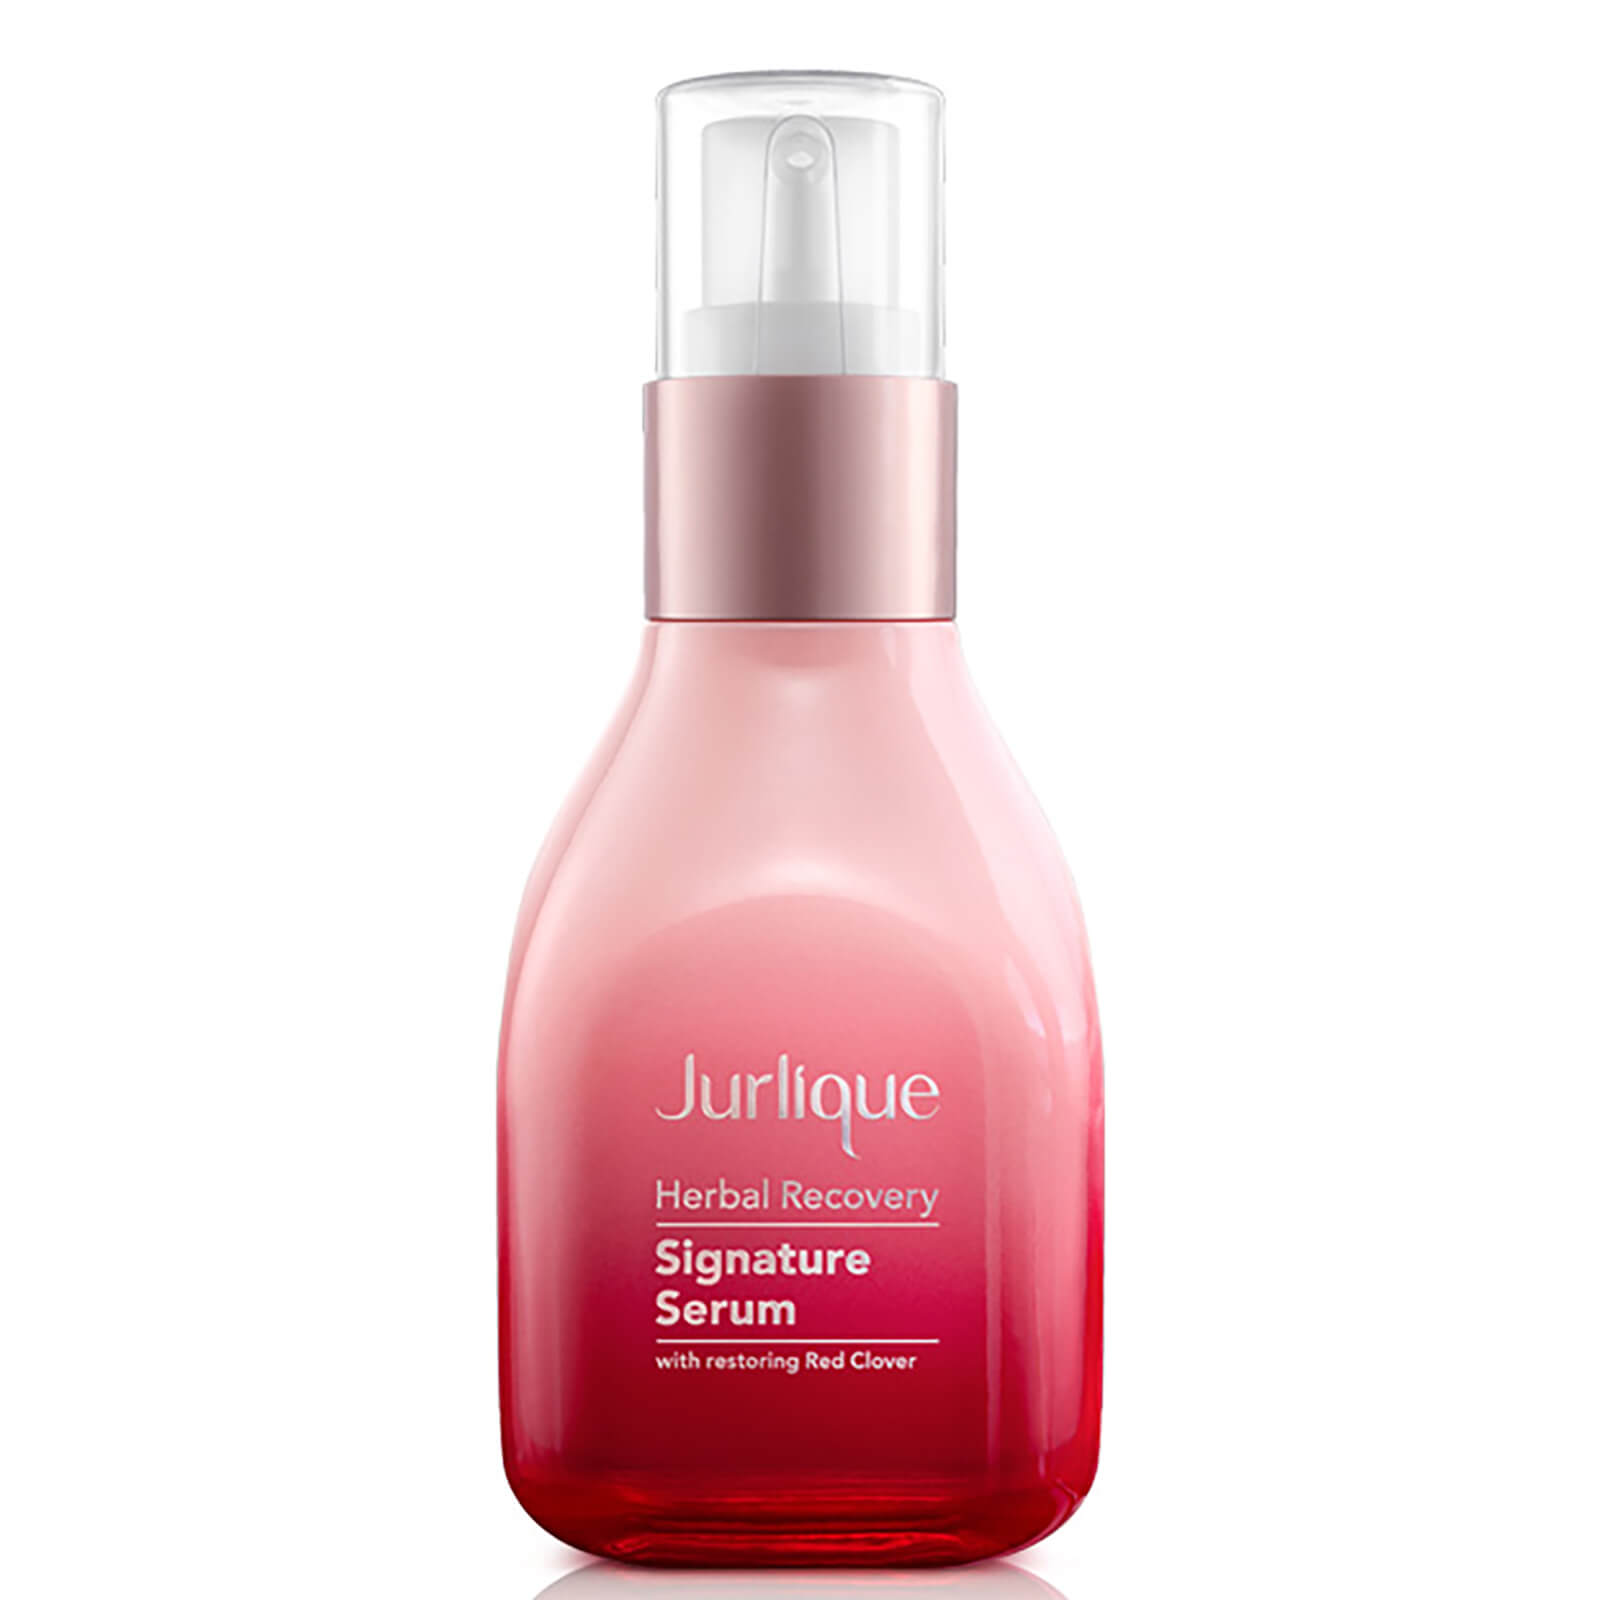 Jurlique Herbal Recovery Signature Serum 50ml